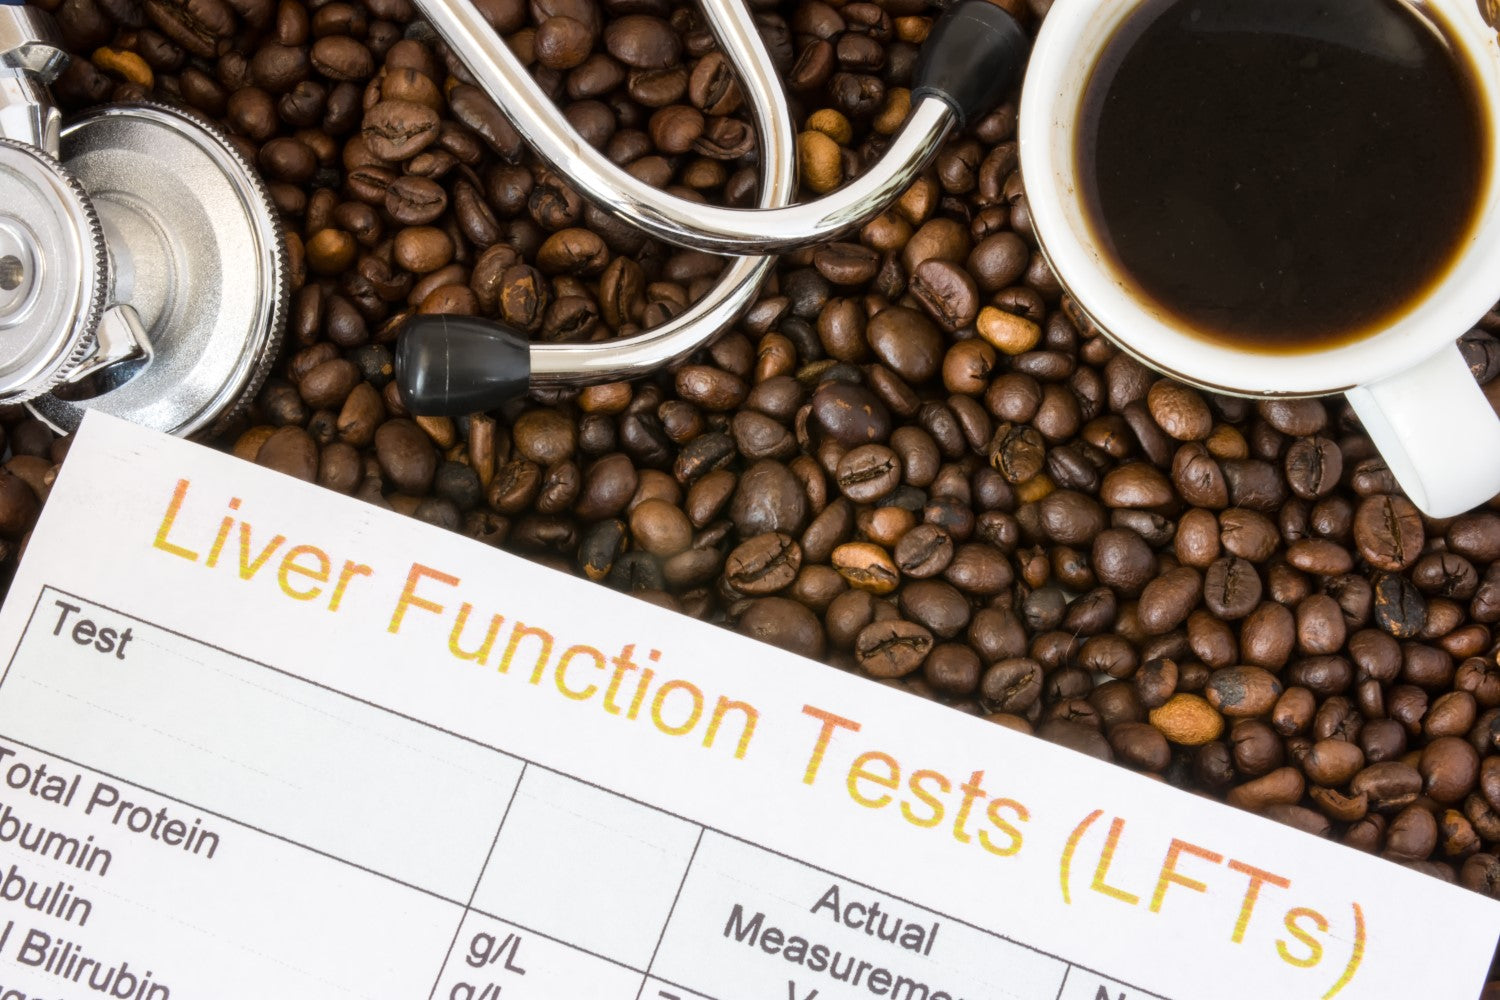 coffe beans, liver test and cup of coffee